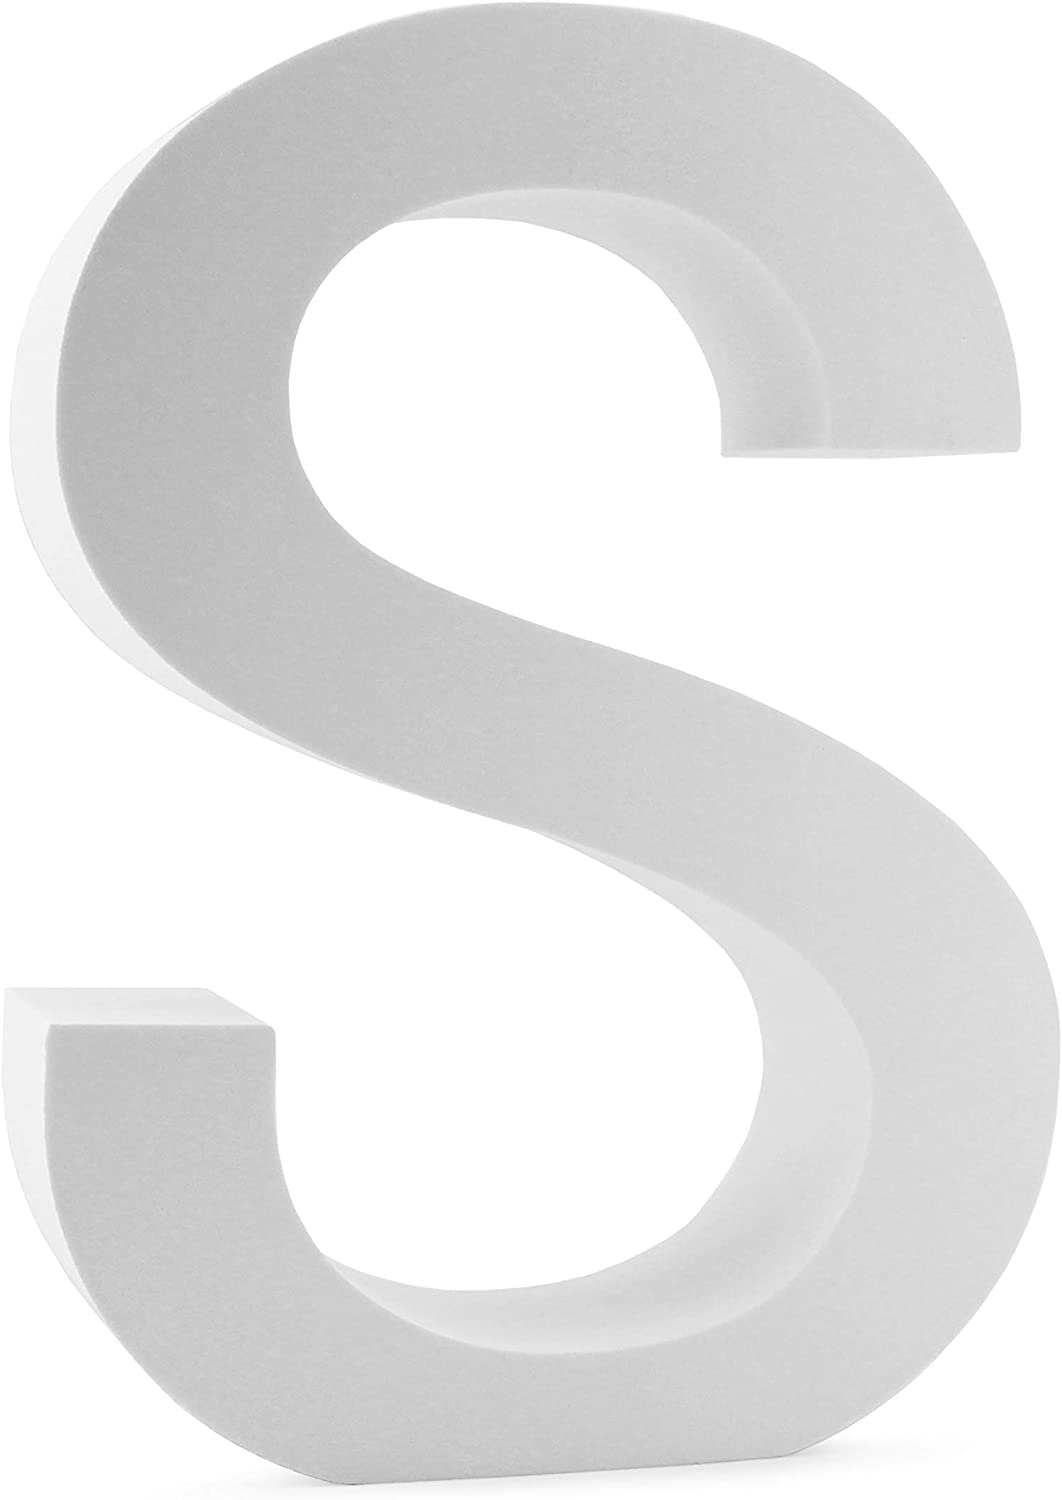 Cornucopia 12-Inch EVA Foam Letter S for Events, Parties, Weddings and Businesses